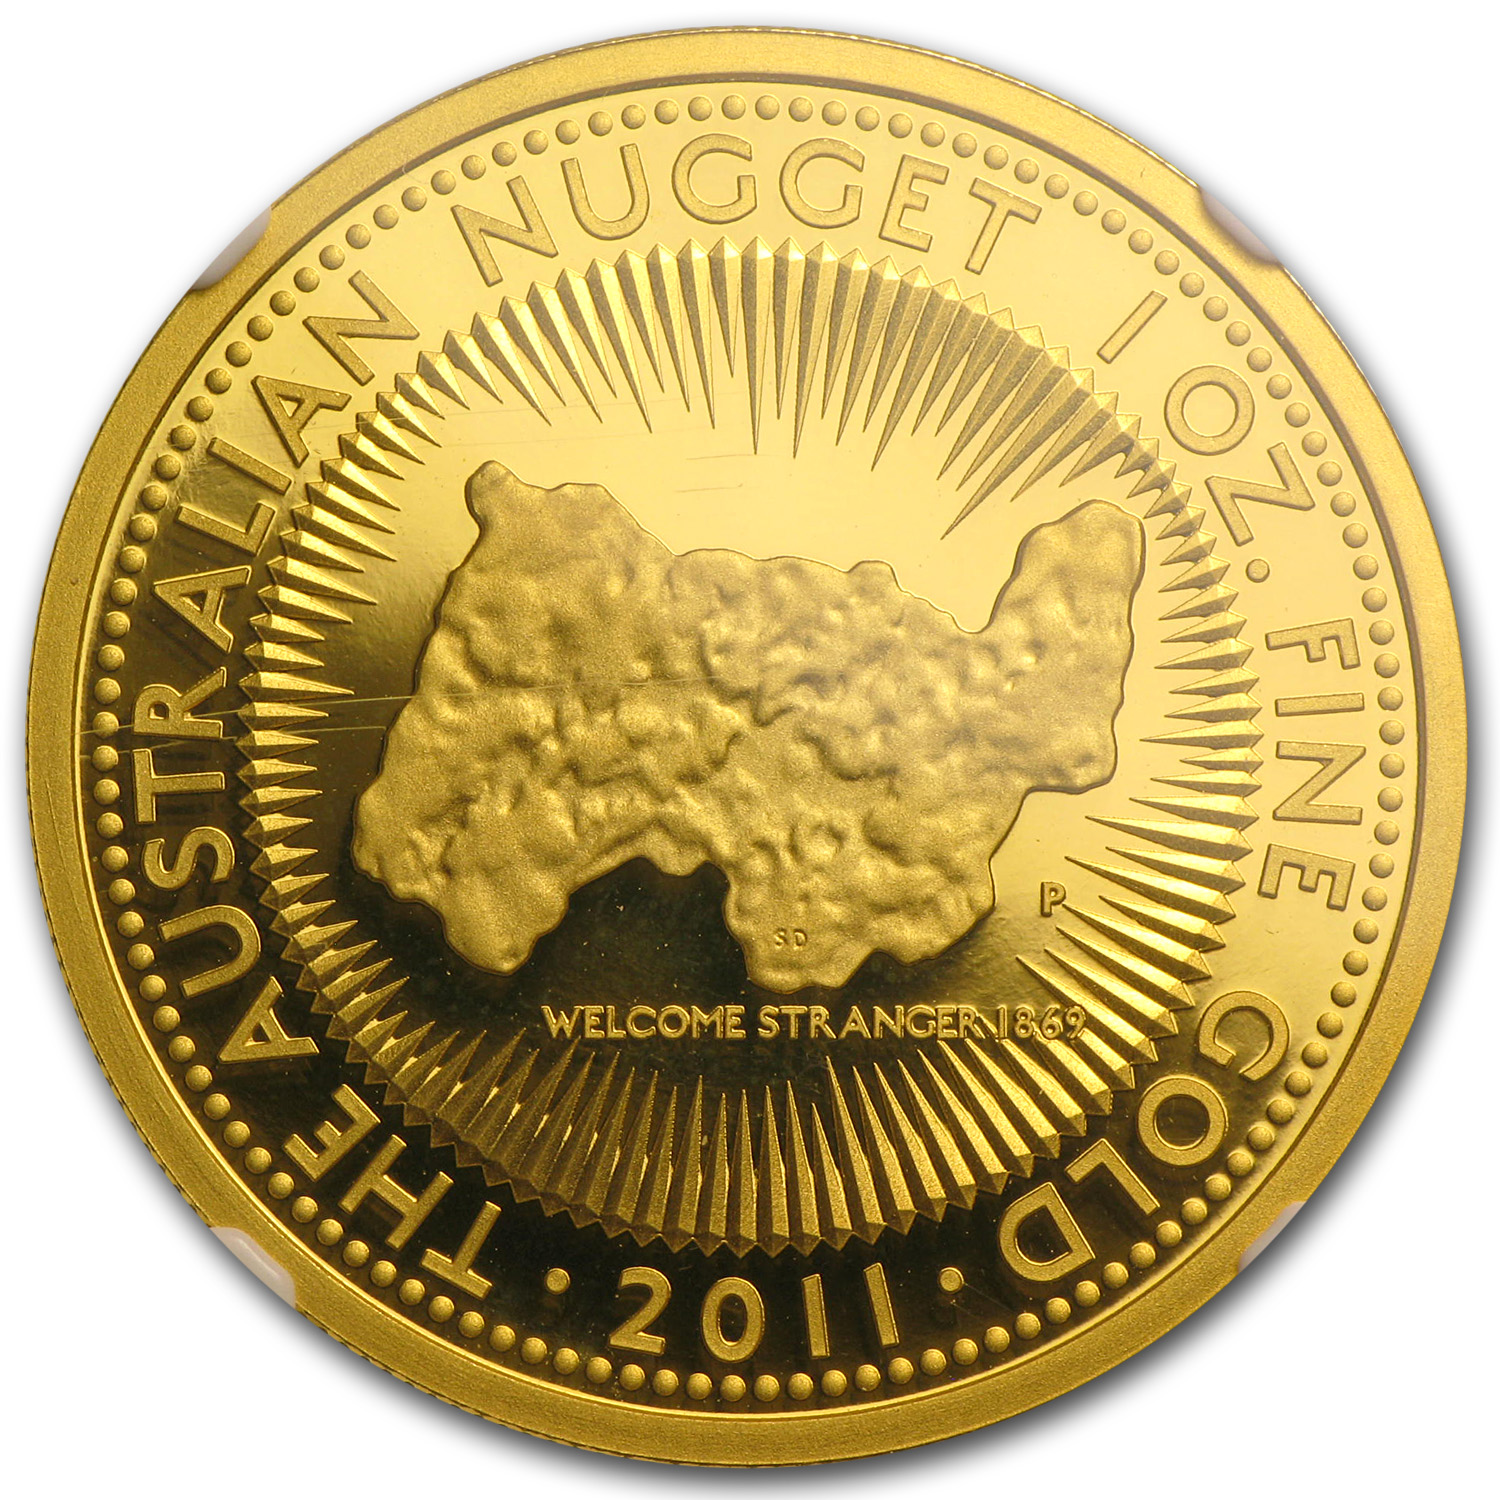 2011 1 oz Australian Proof Gold Nugget 25th Anniv. PF-69 NGC